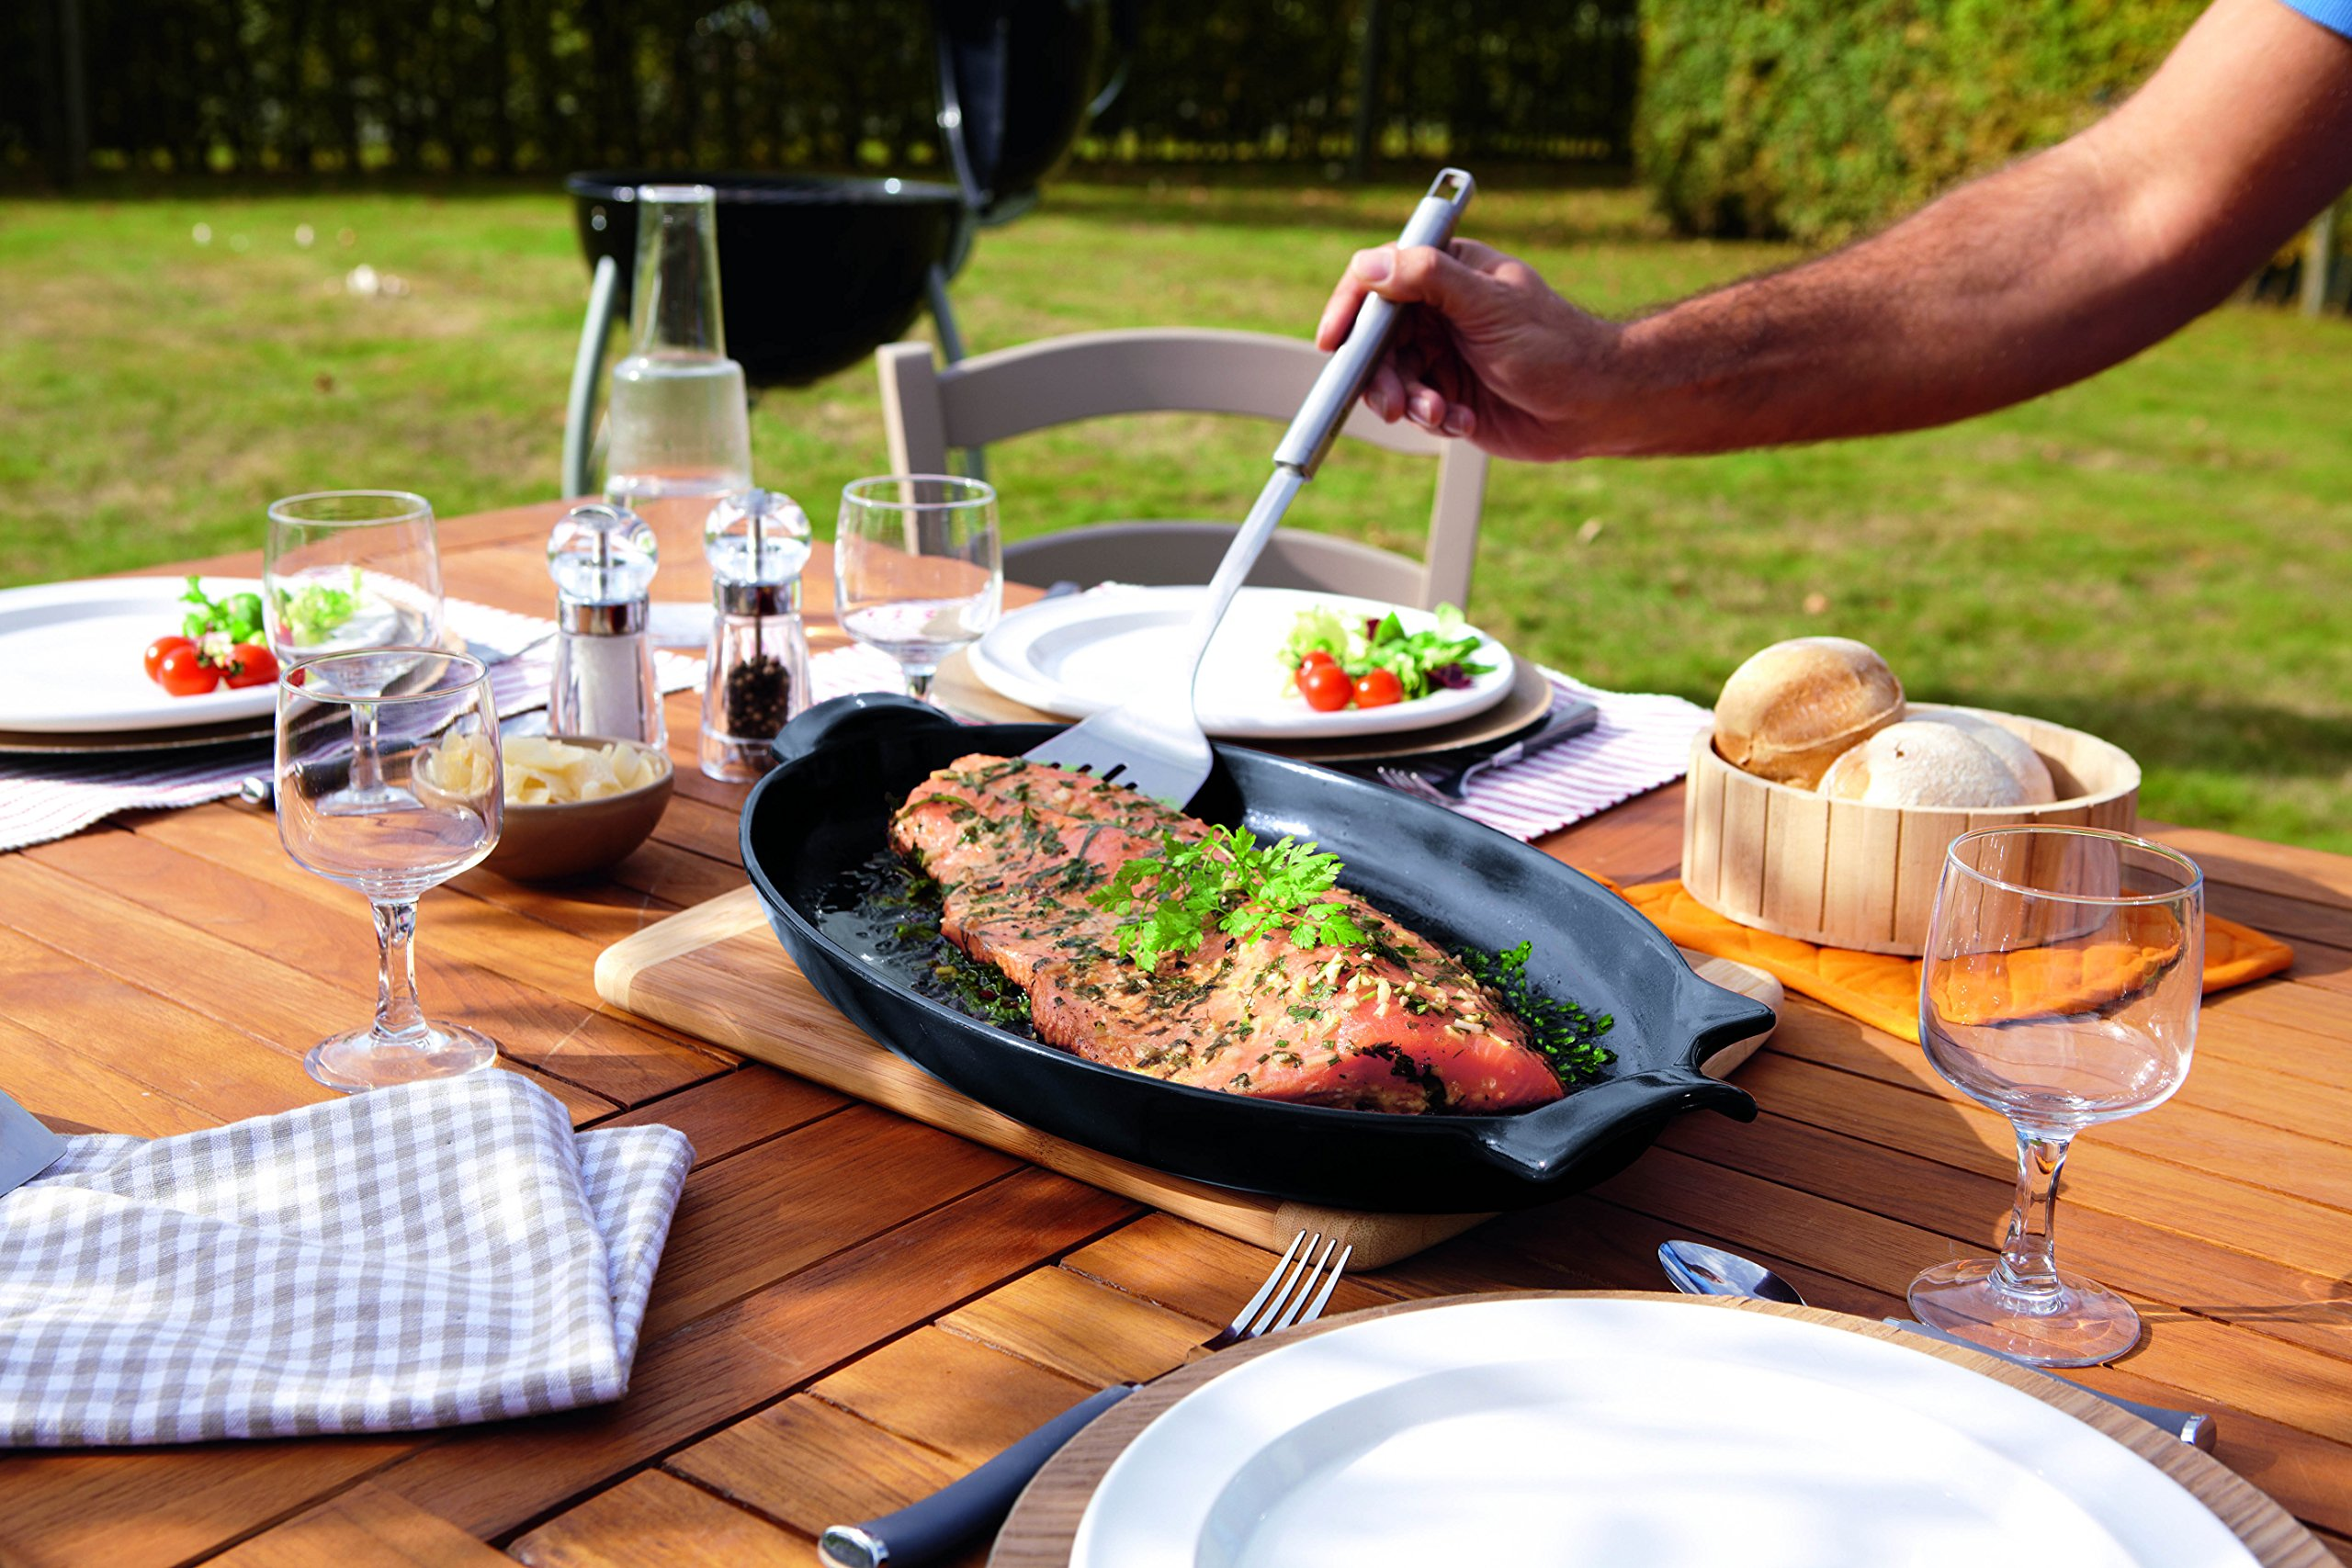 Emile Henry Made In France Flame BBQ Fish Baking Dish, 19.7 x 11'', Charcoal by Emile Henry (Image #2)